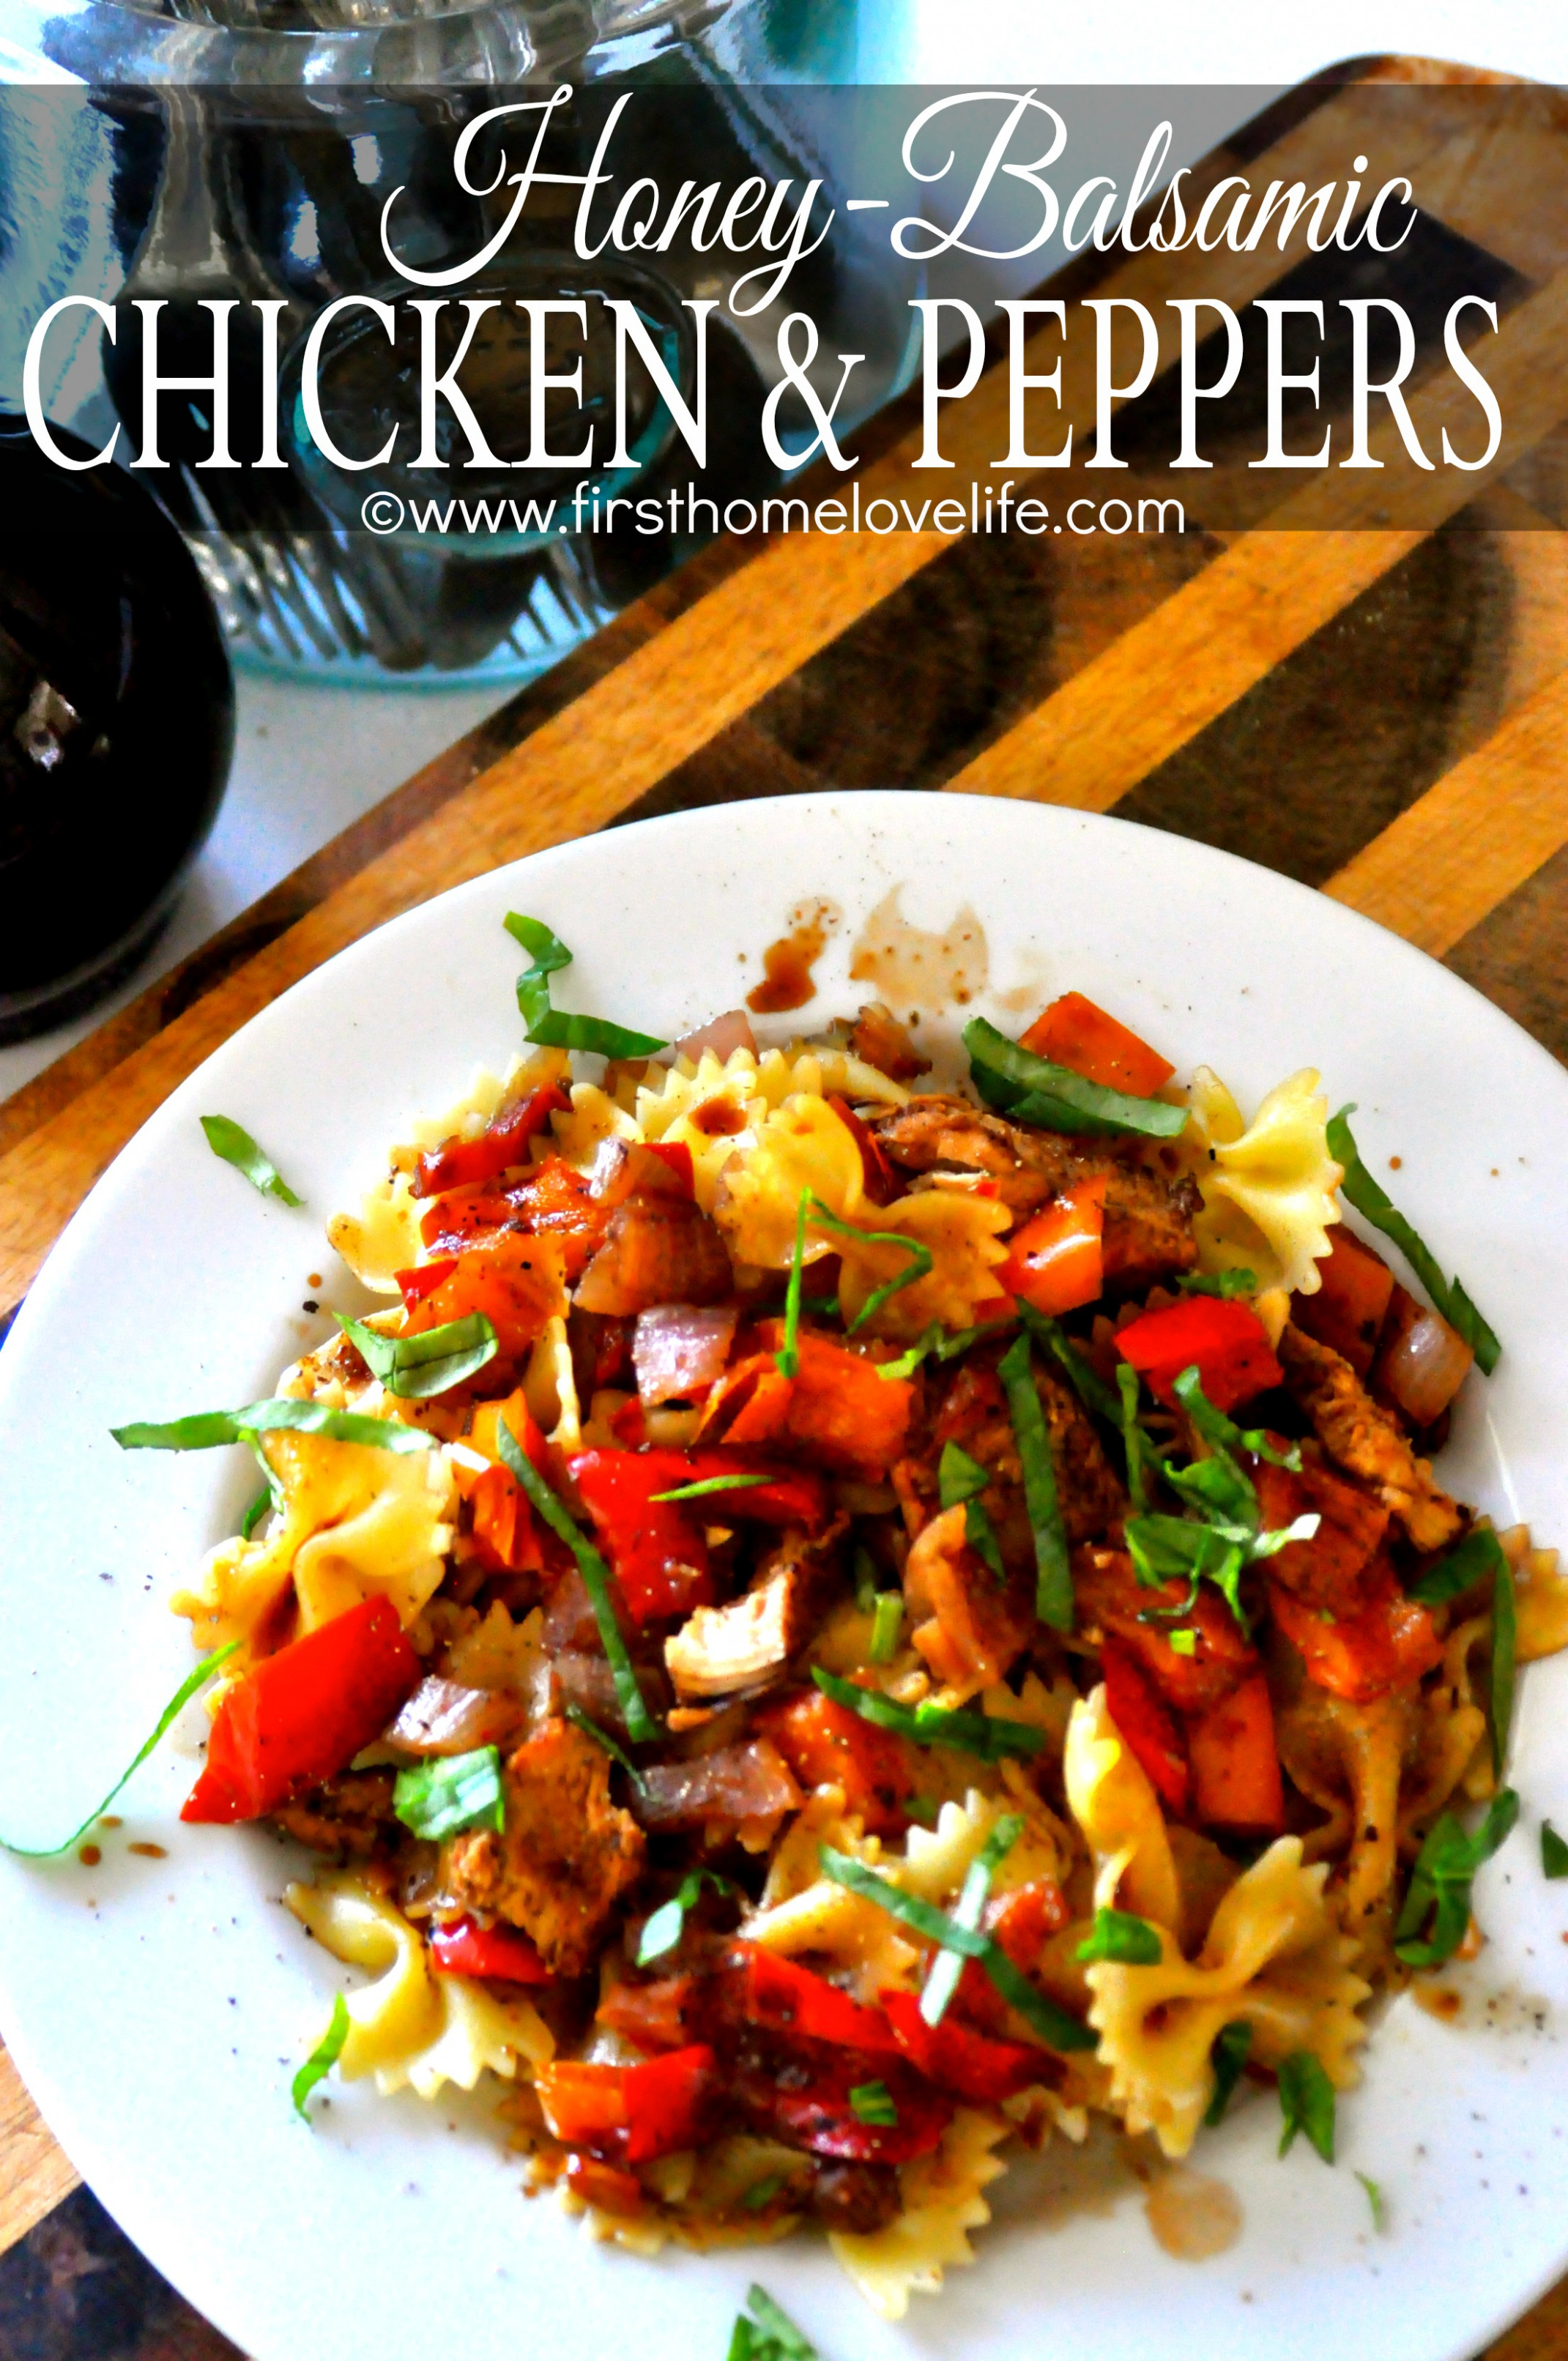 Honey Balsamic Chicken and Peppers - First Home Love Life